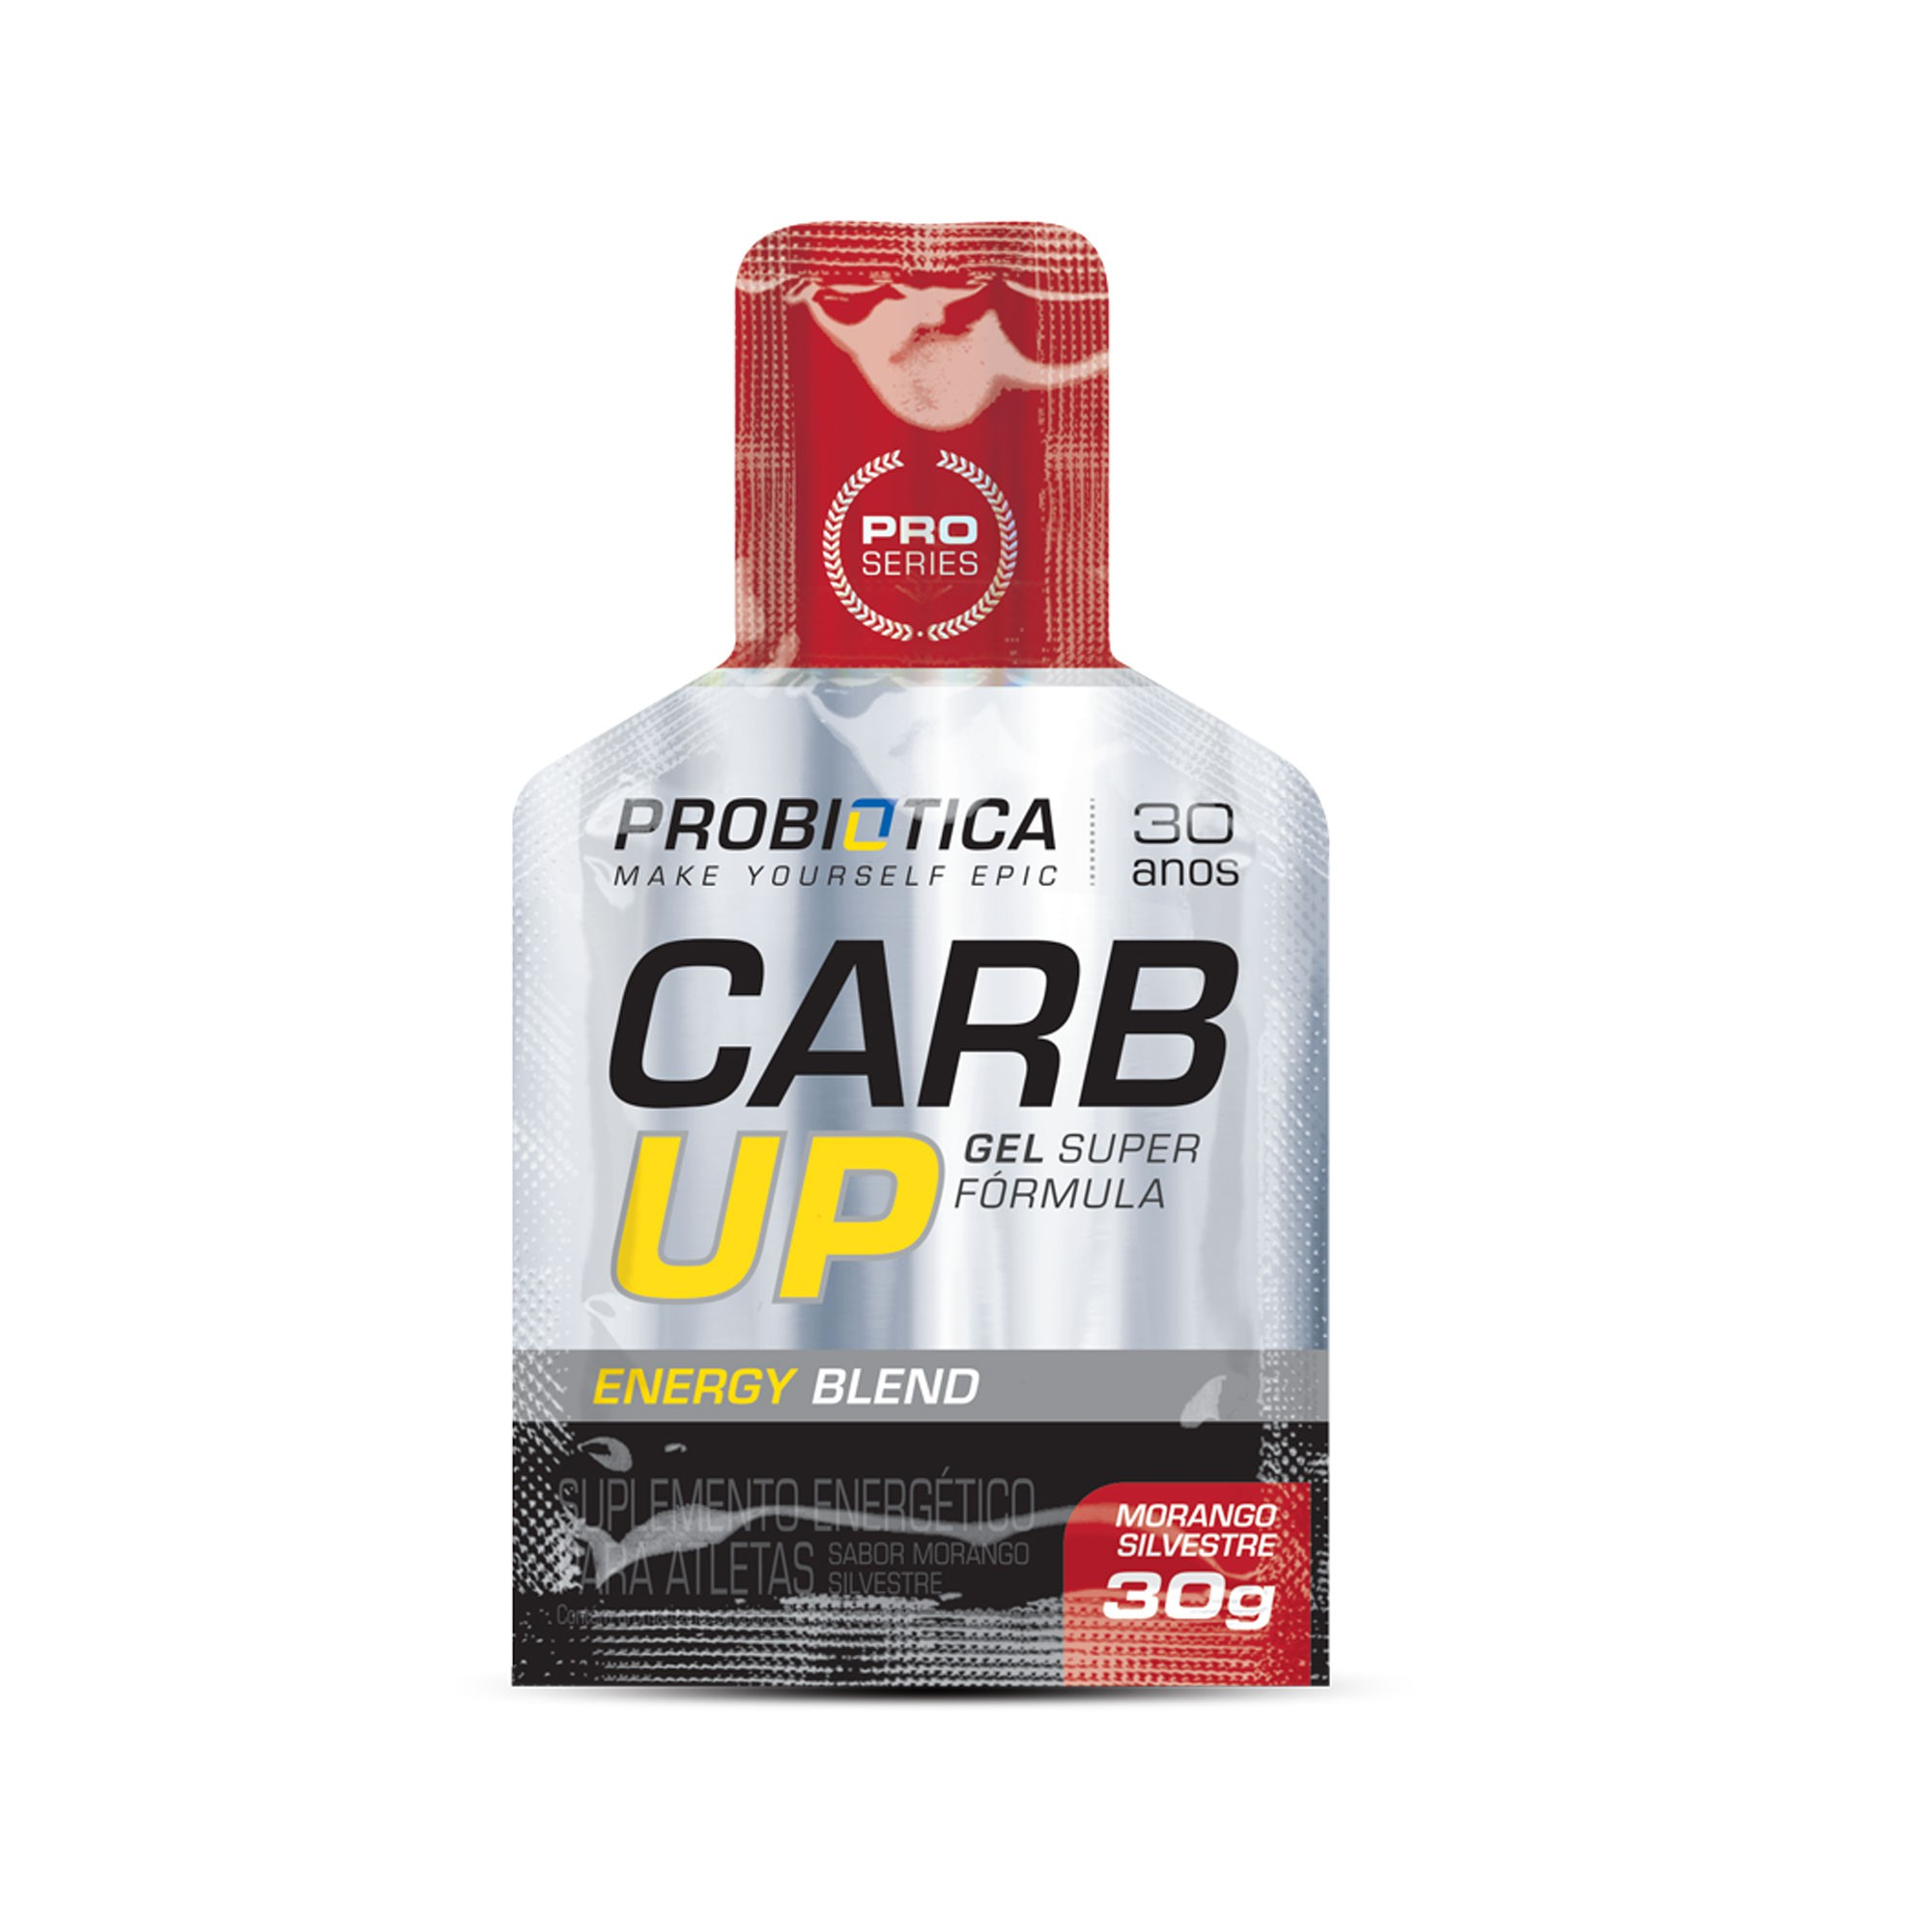 Carb up Gel Super Fórmula Morango Probiotica 30g